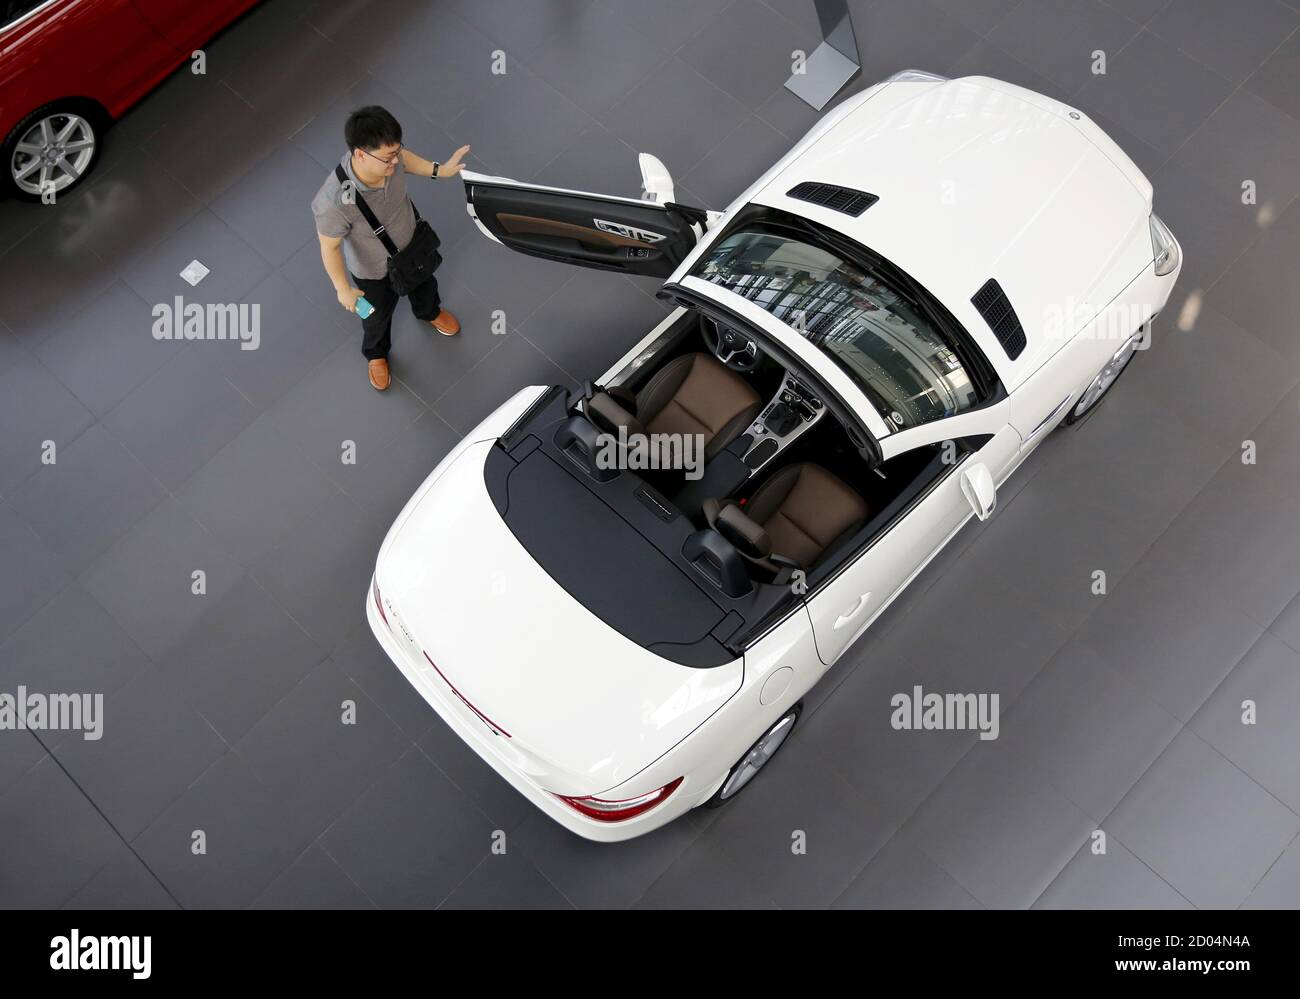 Kang Zhilong Looks Around Mercedes Benz S Slk 200 At Its Dealer Shop In Beijing China July 13 2015 Prices For German Luxury Cars In China Are Tumbling As The Country S Stock Market Sell Off